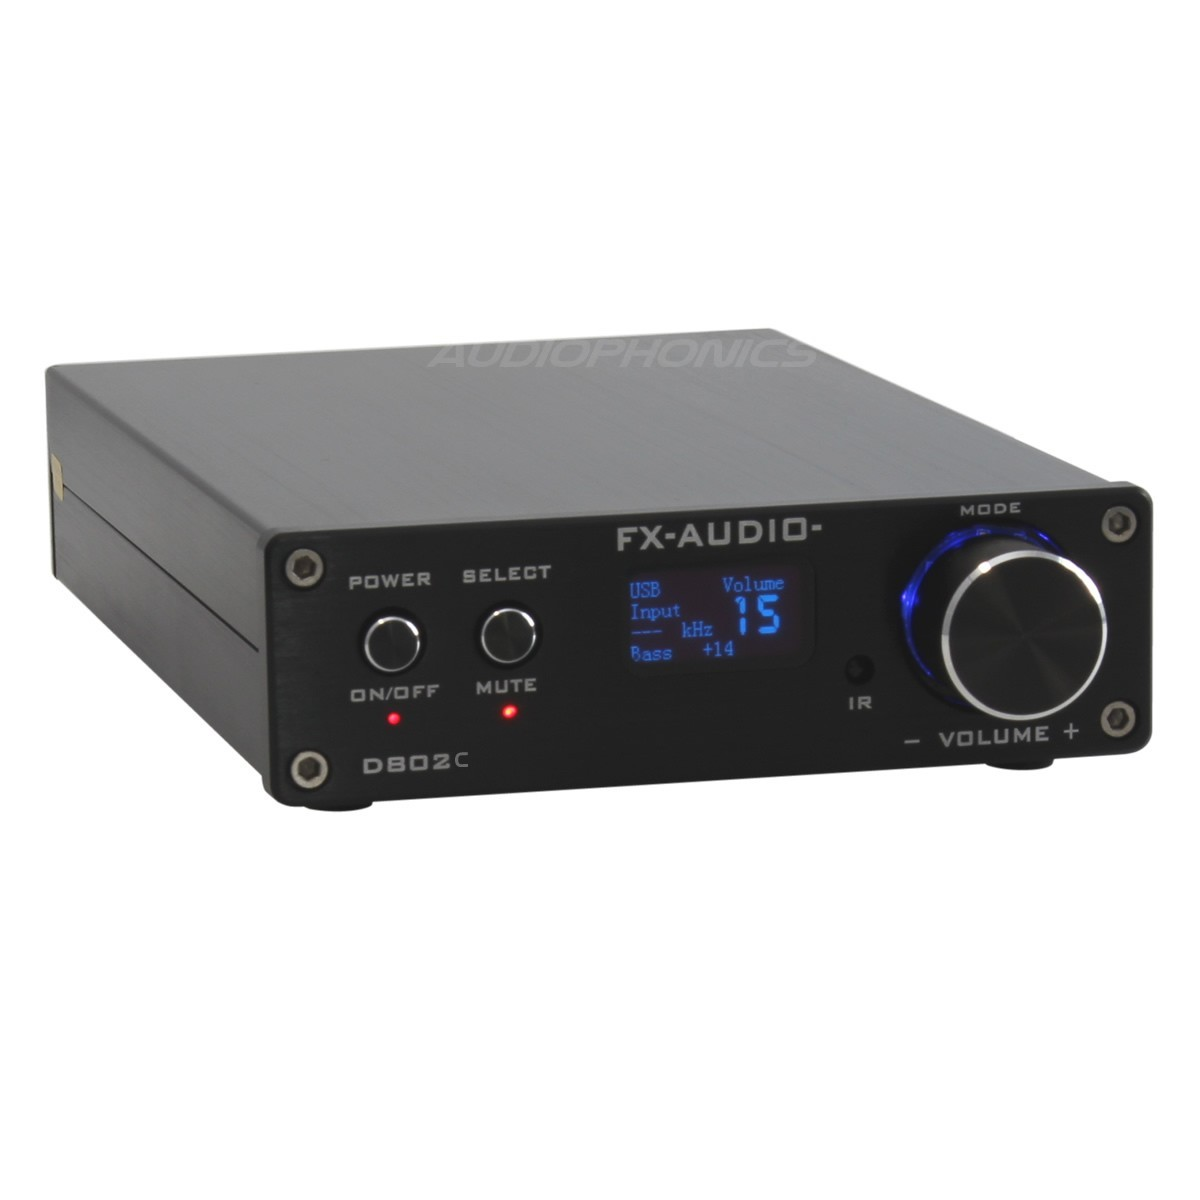 FX-AUDIO D802C Amplificateur FDA Bluetooth 3.0 Class D STA326 2x50W / 8 Ohm Noir